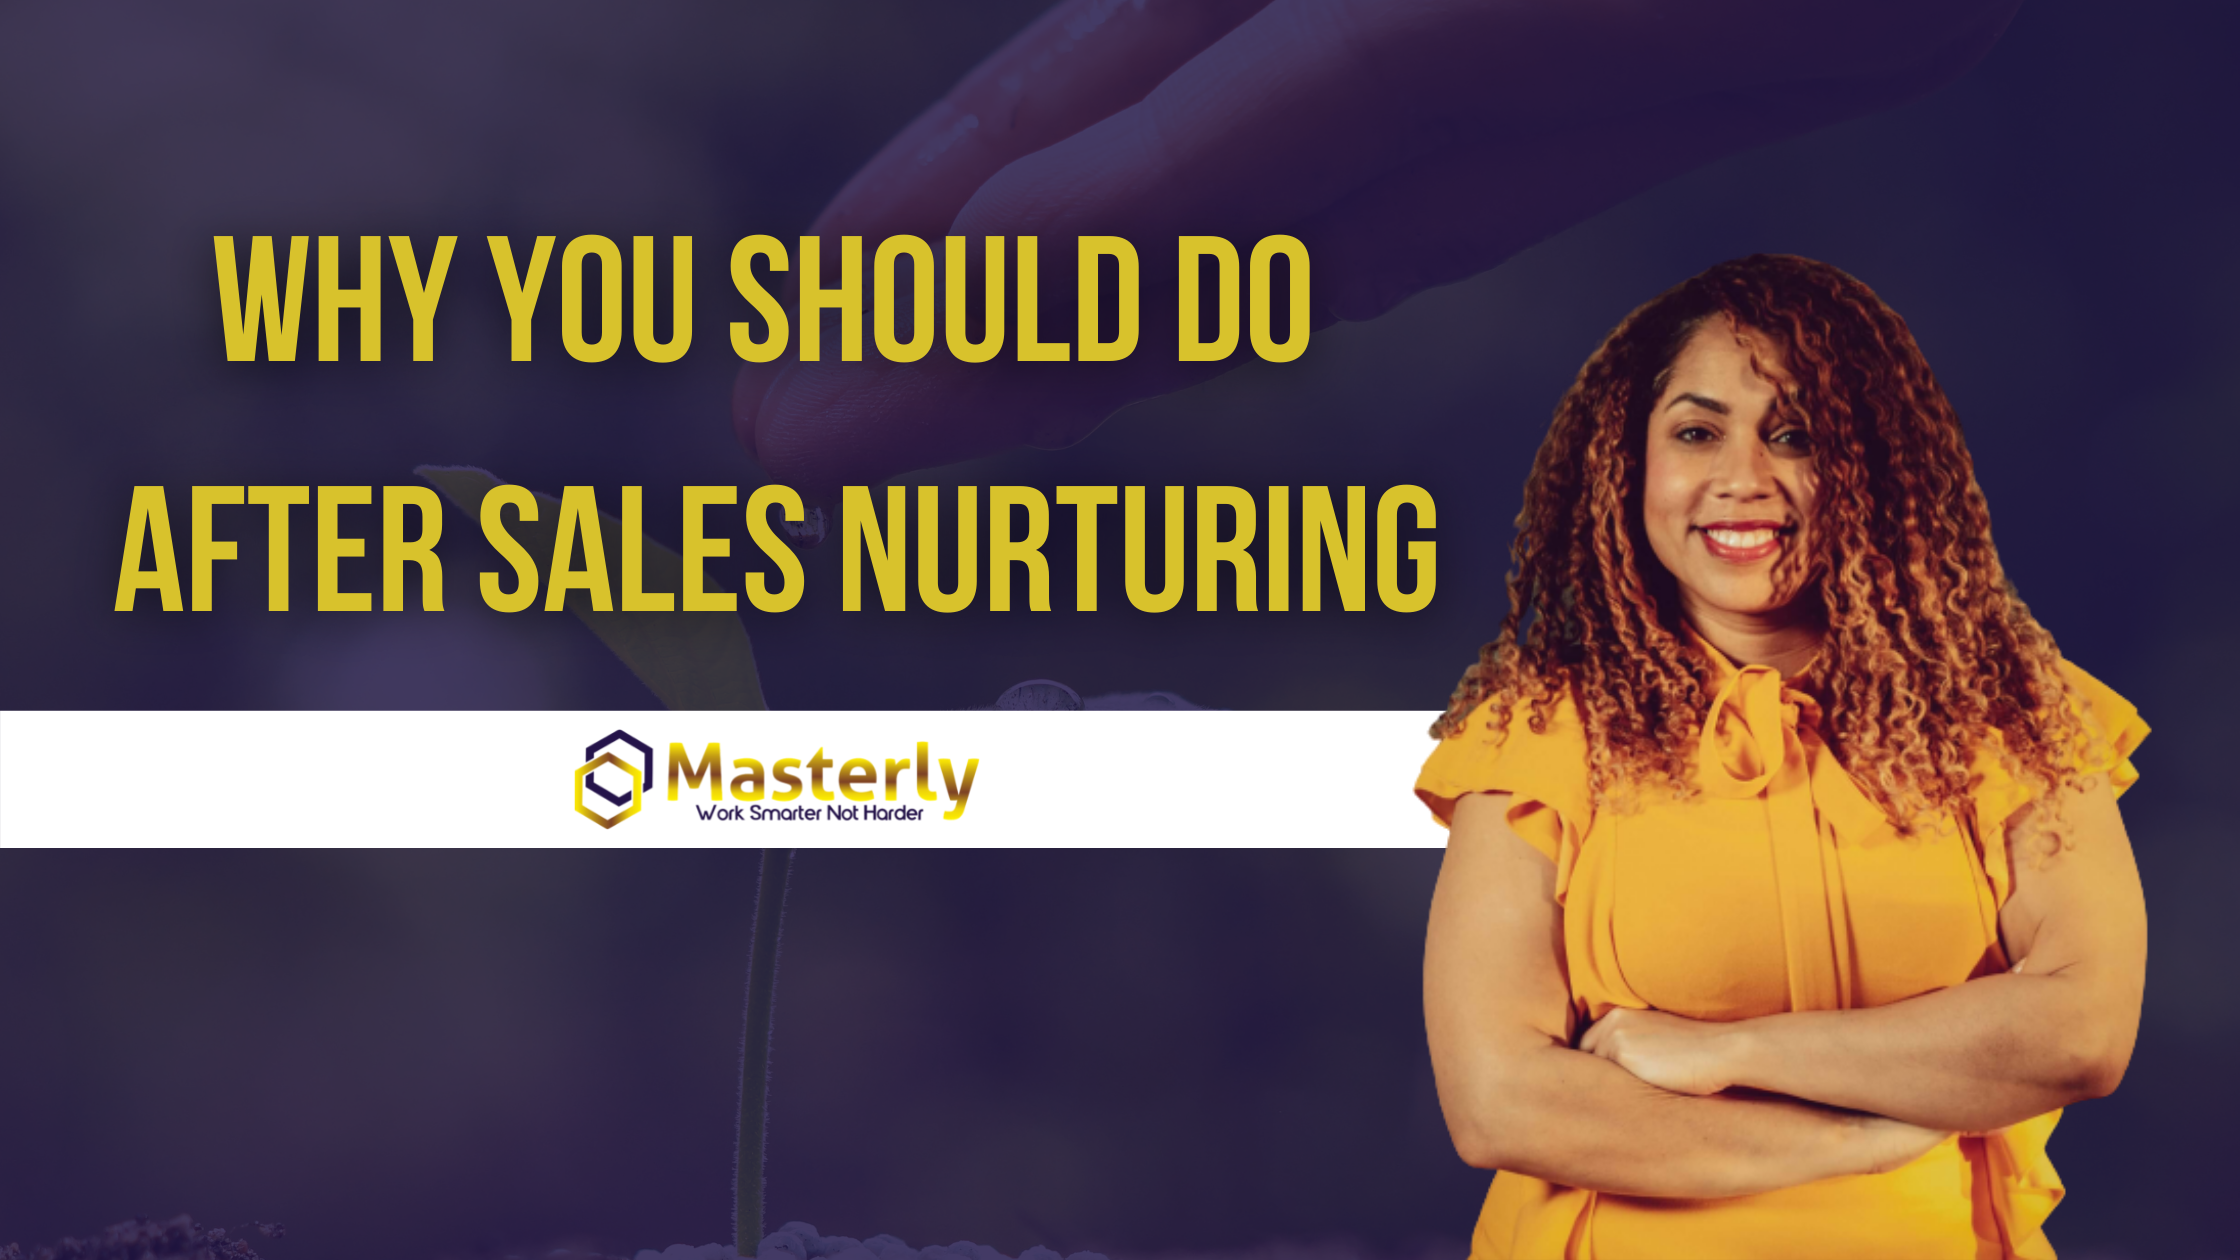 Why you should do after sales nurturing